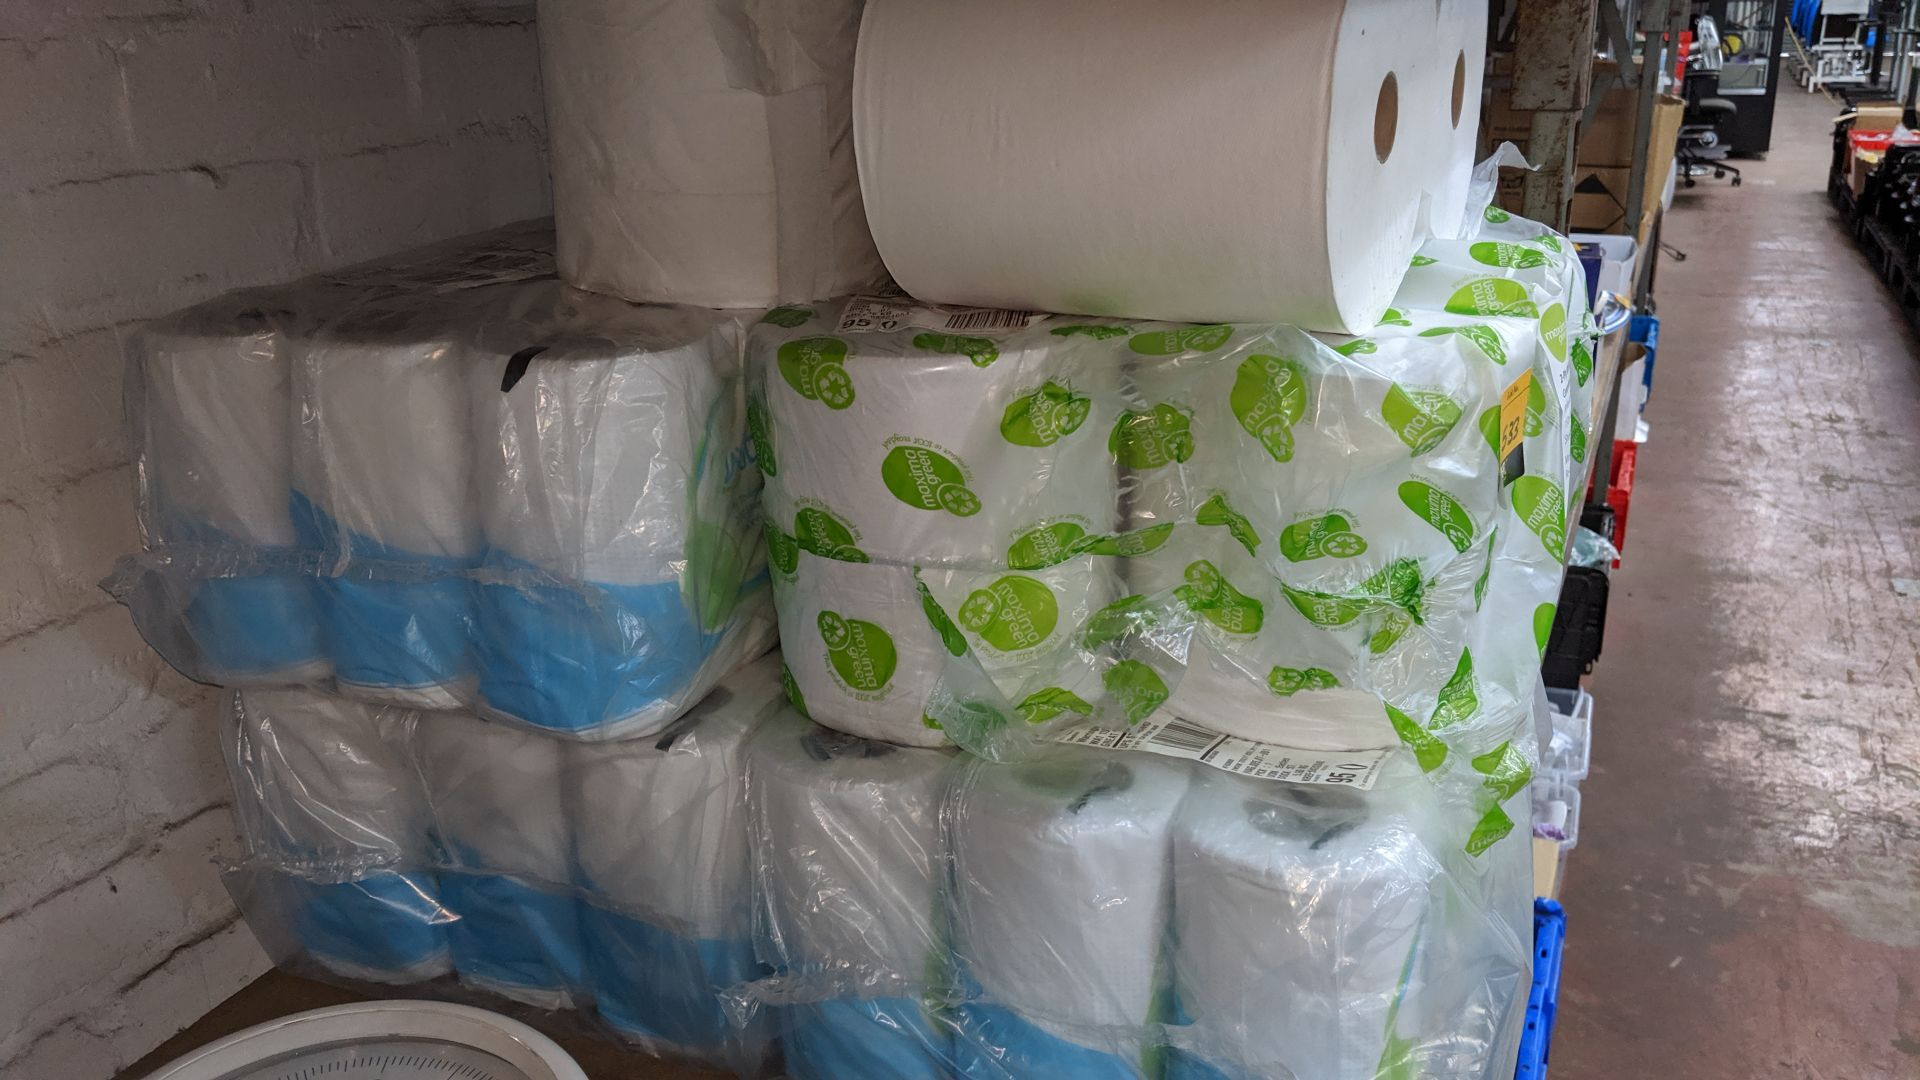 Lot 533 - Quantity of assorted types of paper towel. This is one of a large number of lots used/owned by One